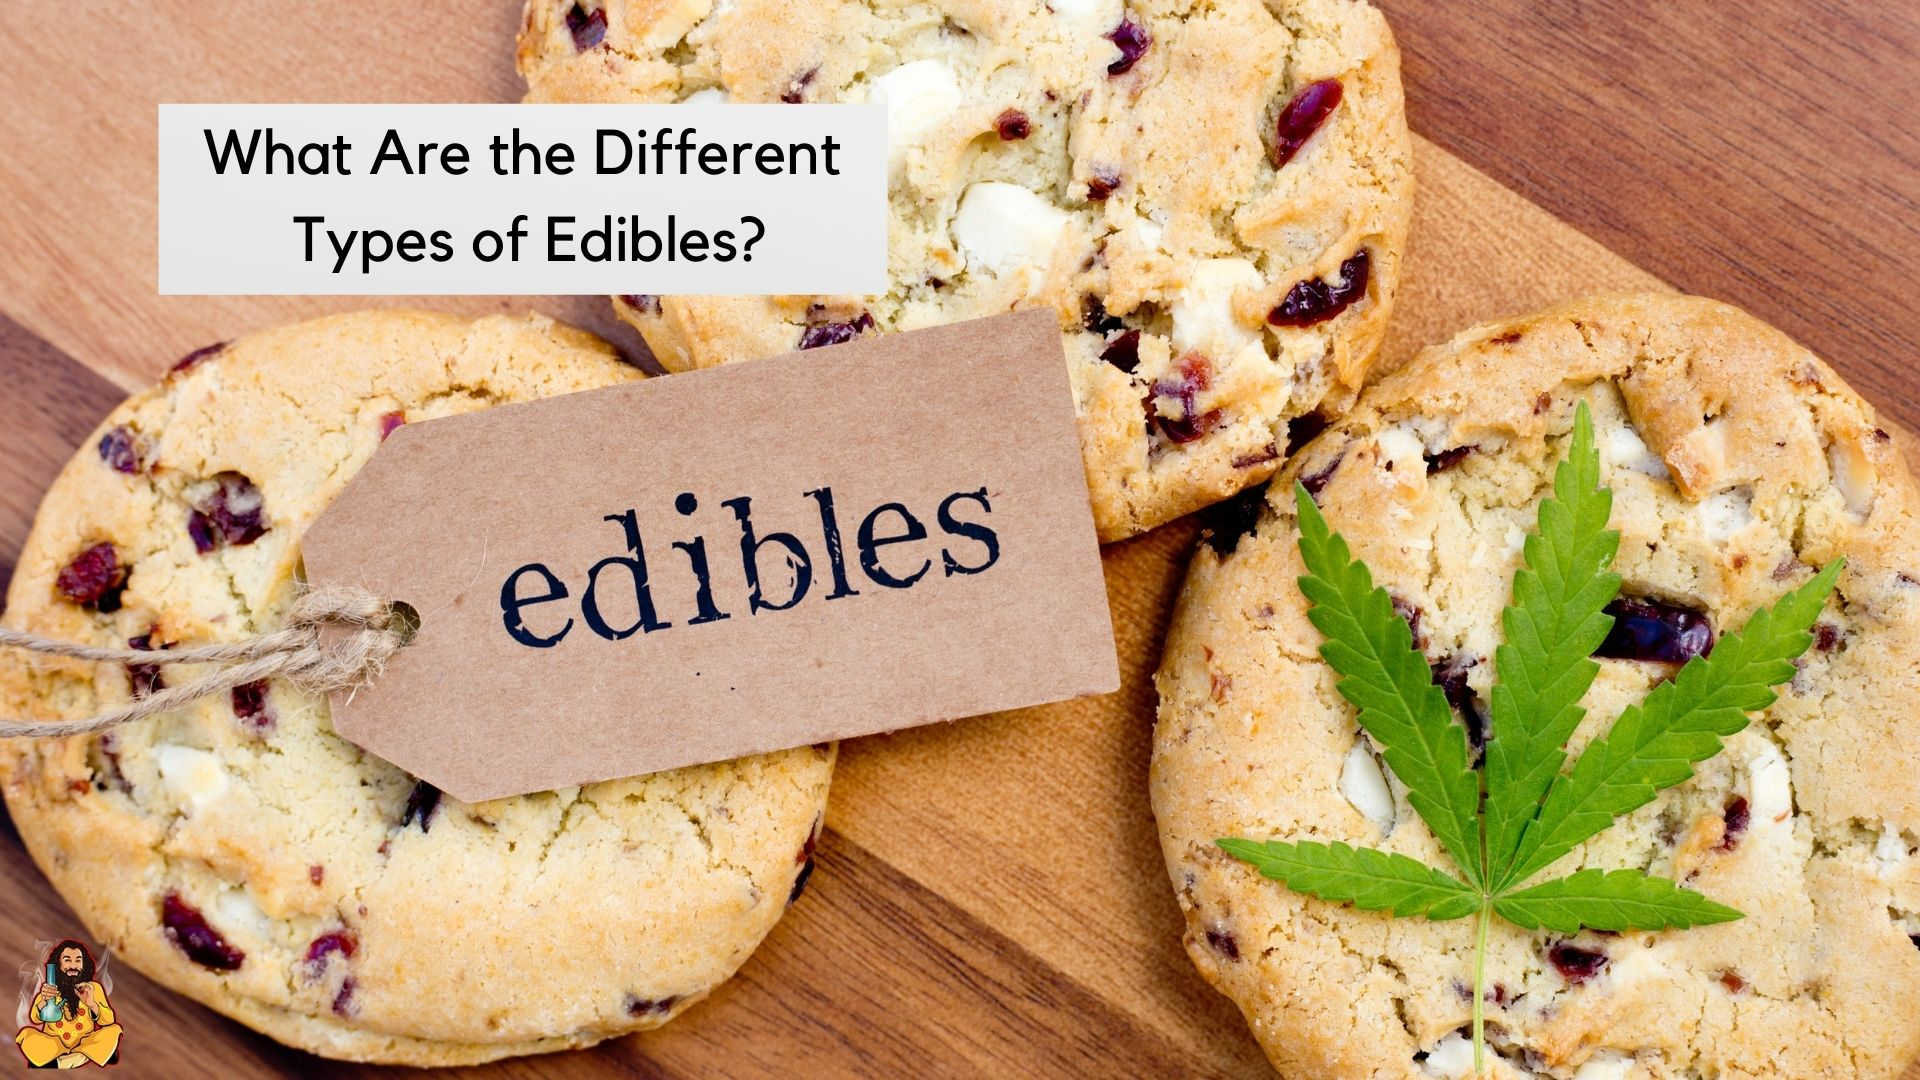 Different Types of Edibles